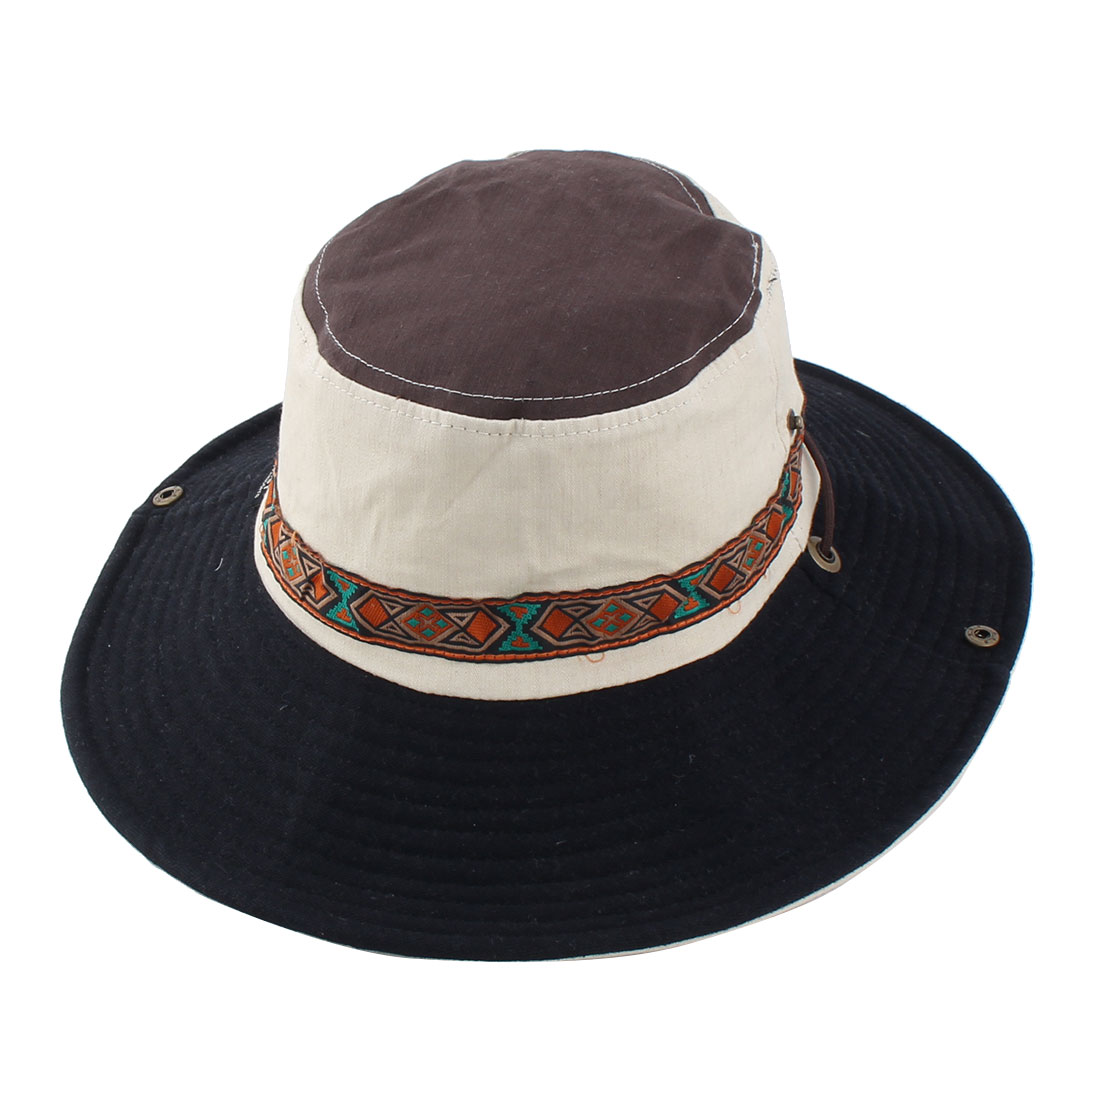 Fisherman Outdoor Fishing Hiking Cycling National Style Strap Wide Brimmed Floppy Cap Bucket Hat Beige